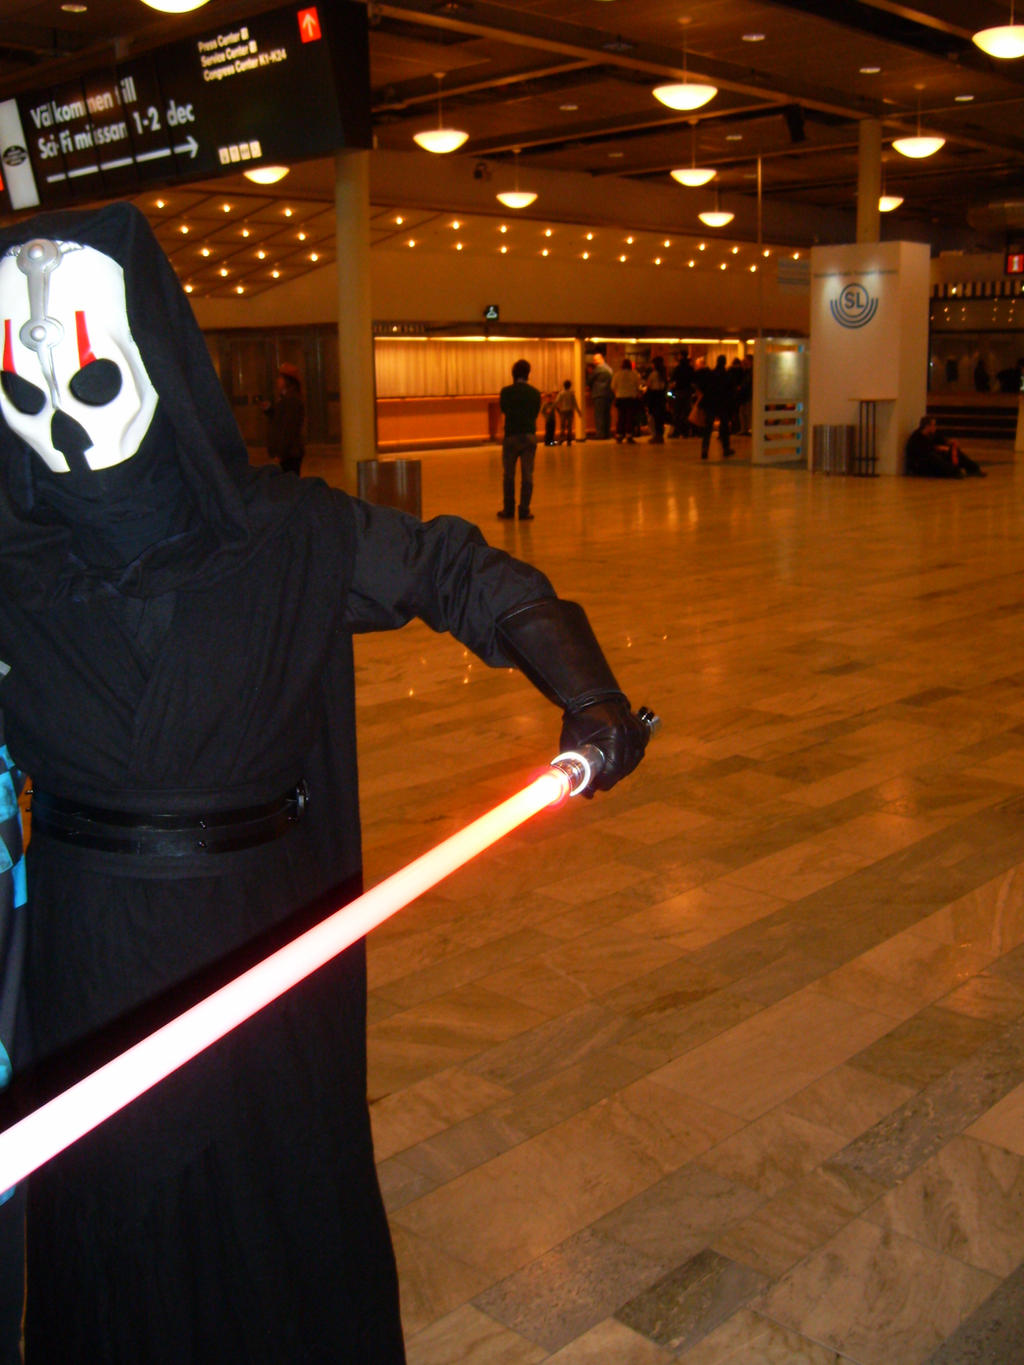 Sith Lord by EgonEagle